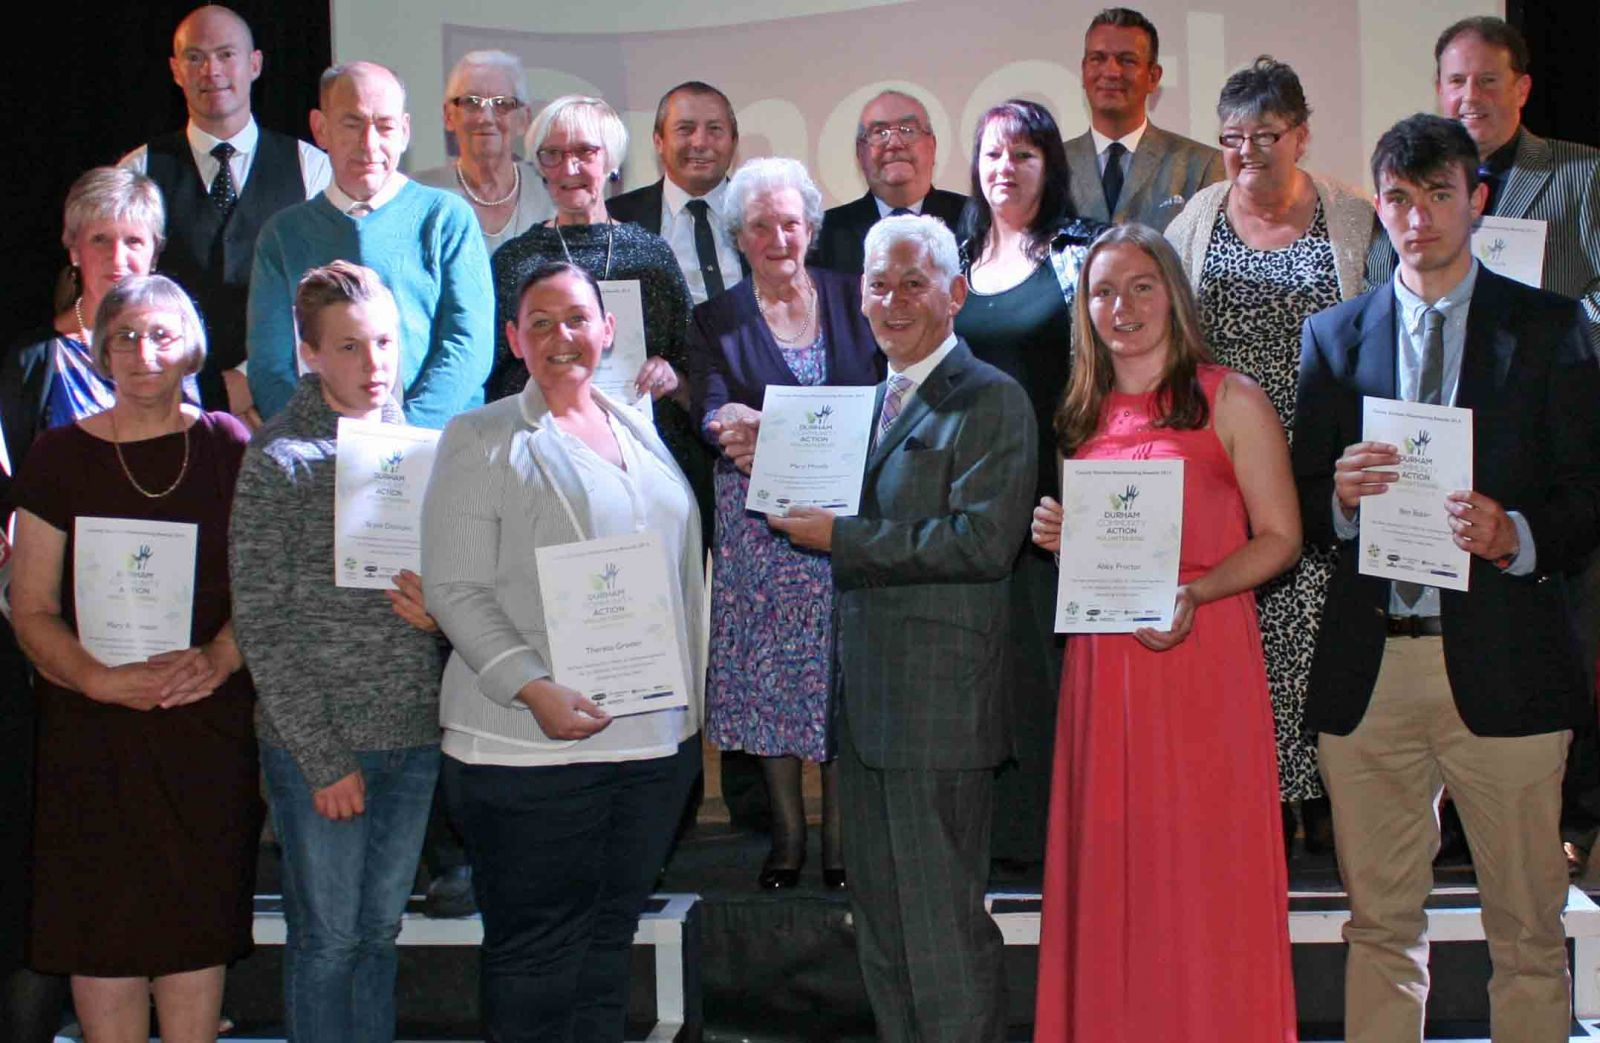 The shortlisted nominees with their certificates, accompanied by Steve Colman from Smooth Radio